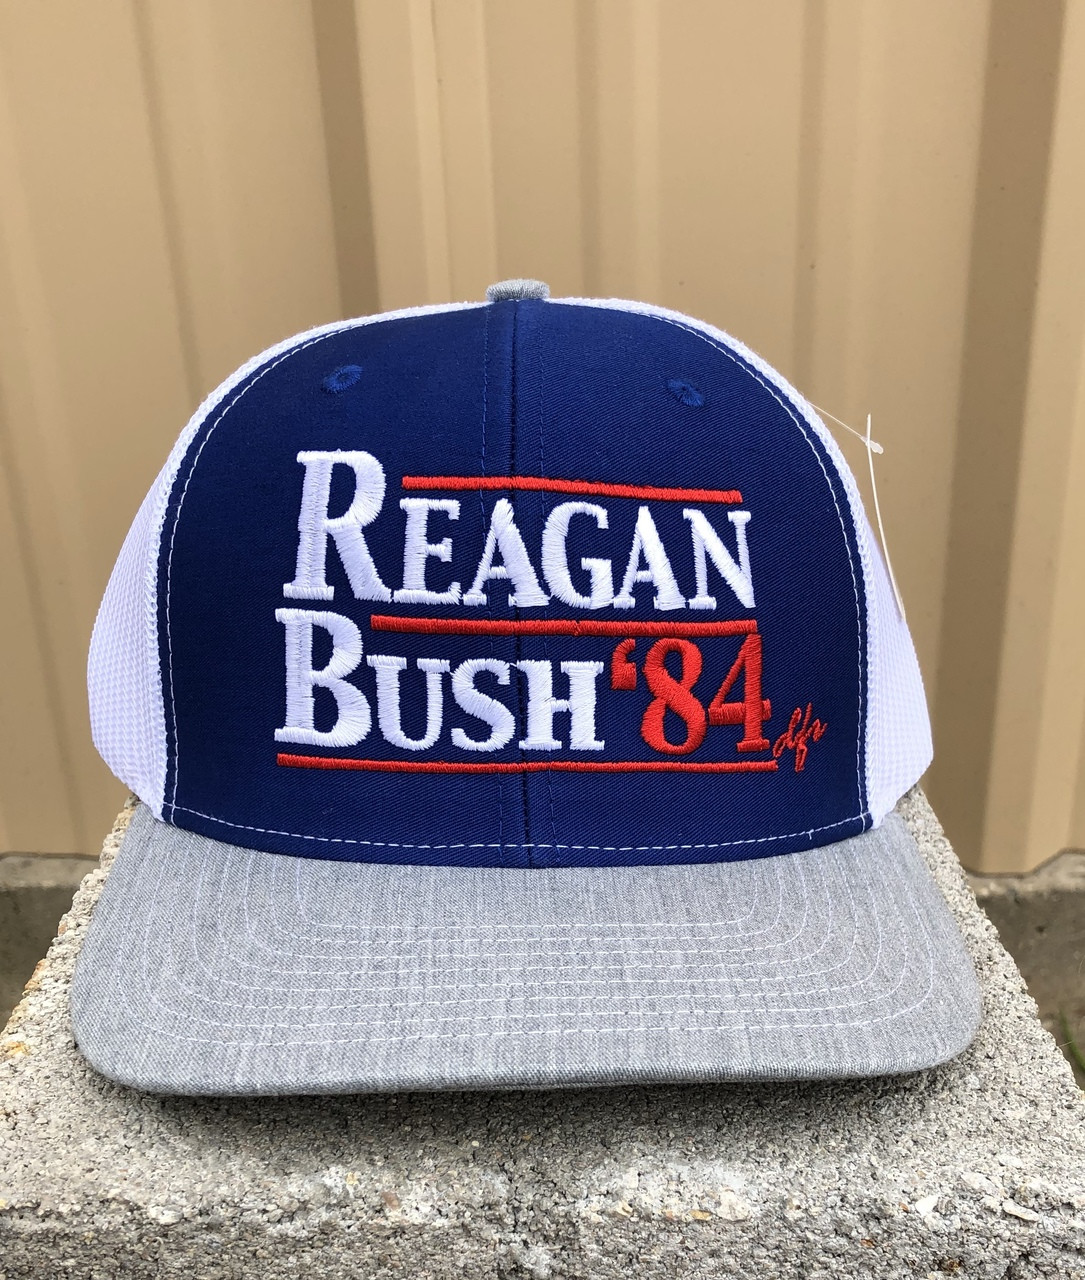 0afc0cfec3817 REAGAN BUSH  84 TRUCKER CAP - DENNARDS